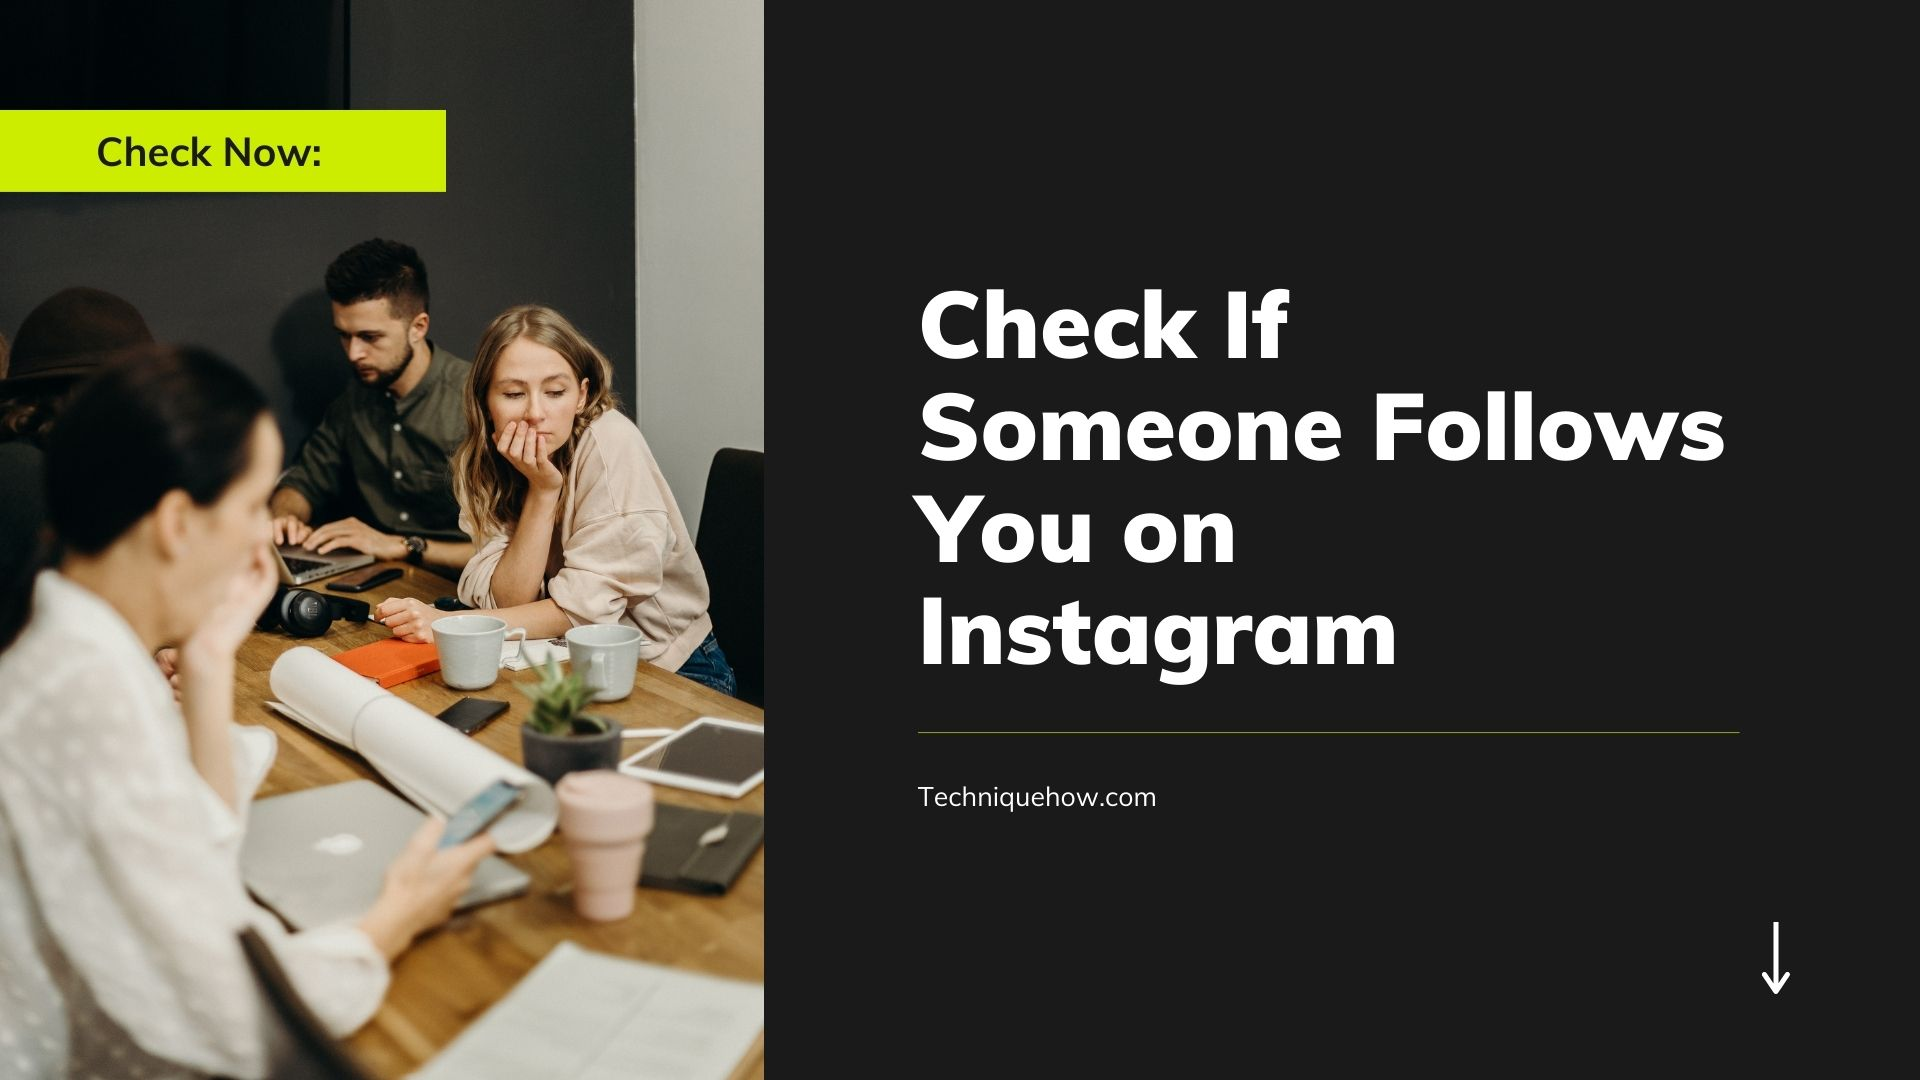 Check If Someone Follows You on Instagram